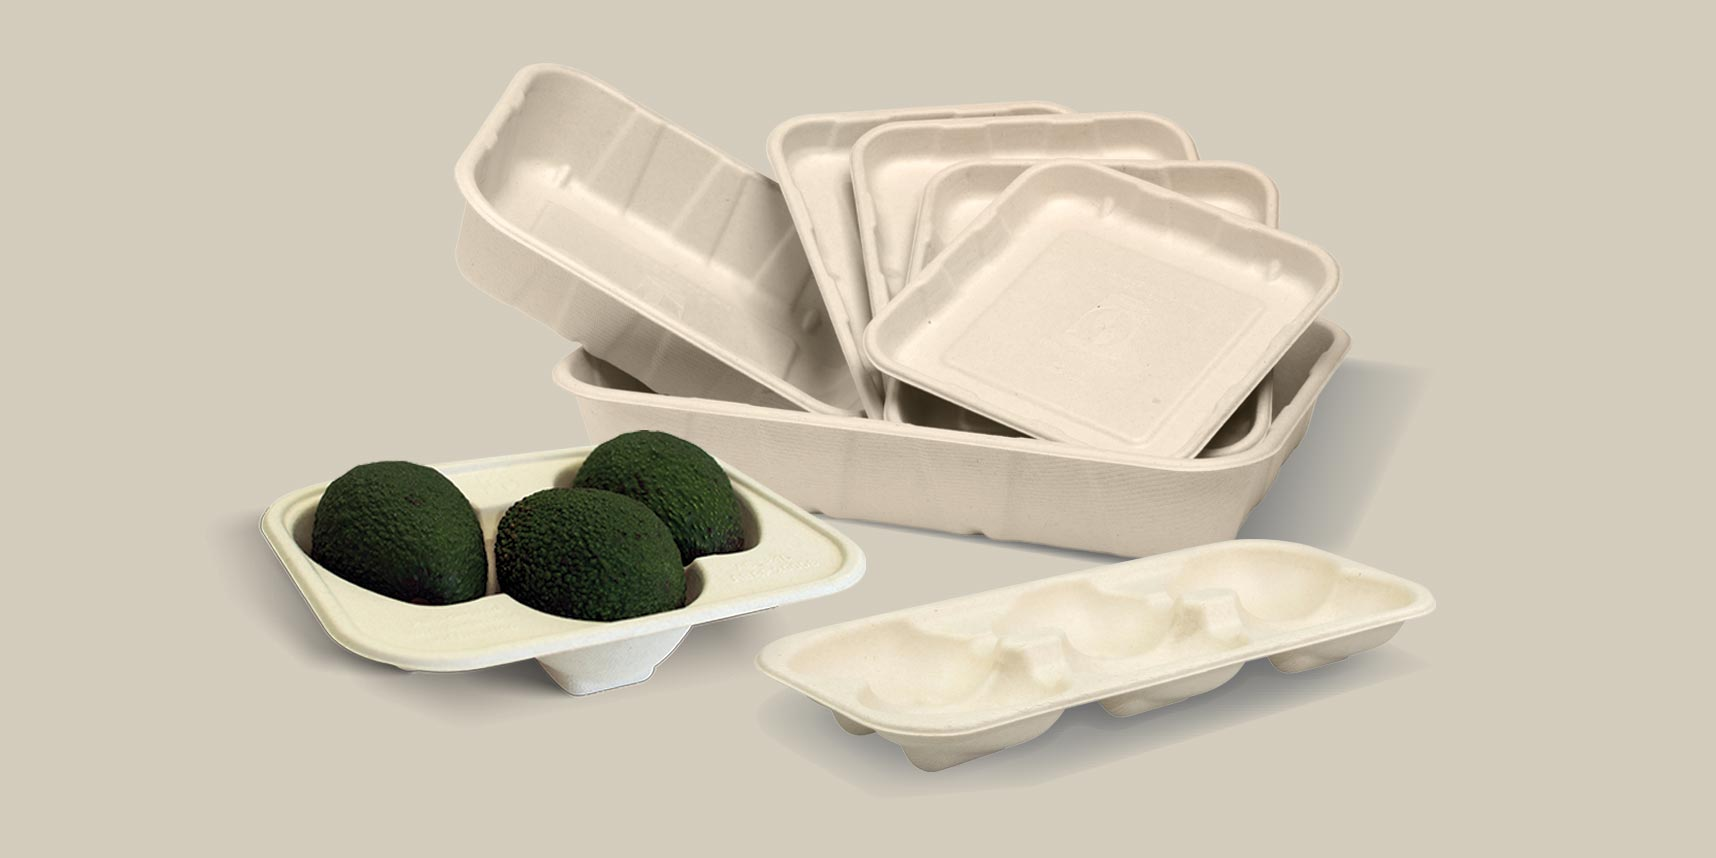 selection of moulded produce packaging